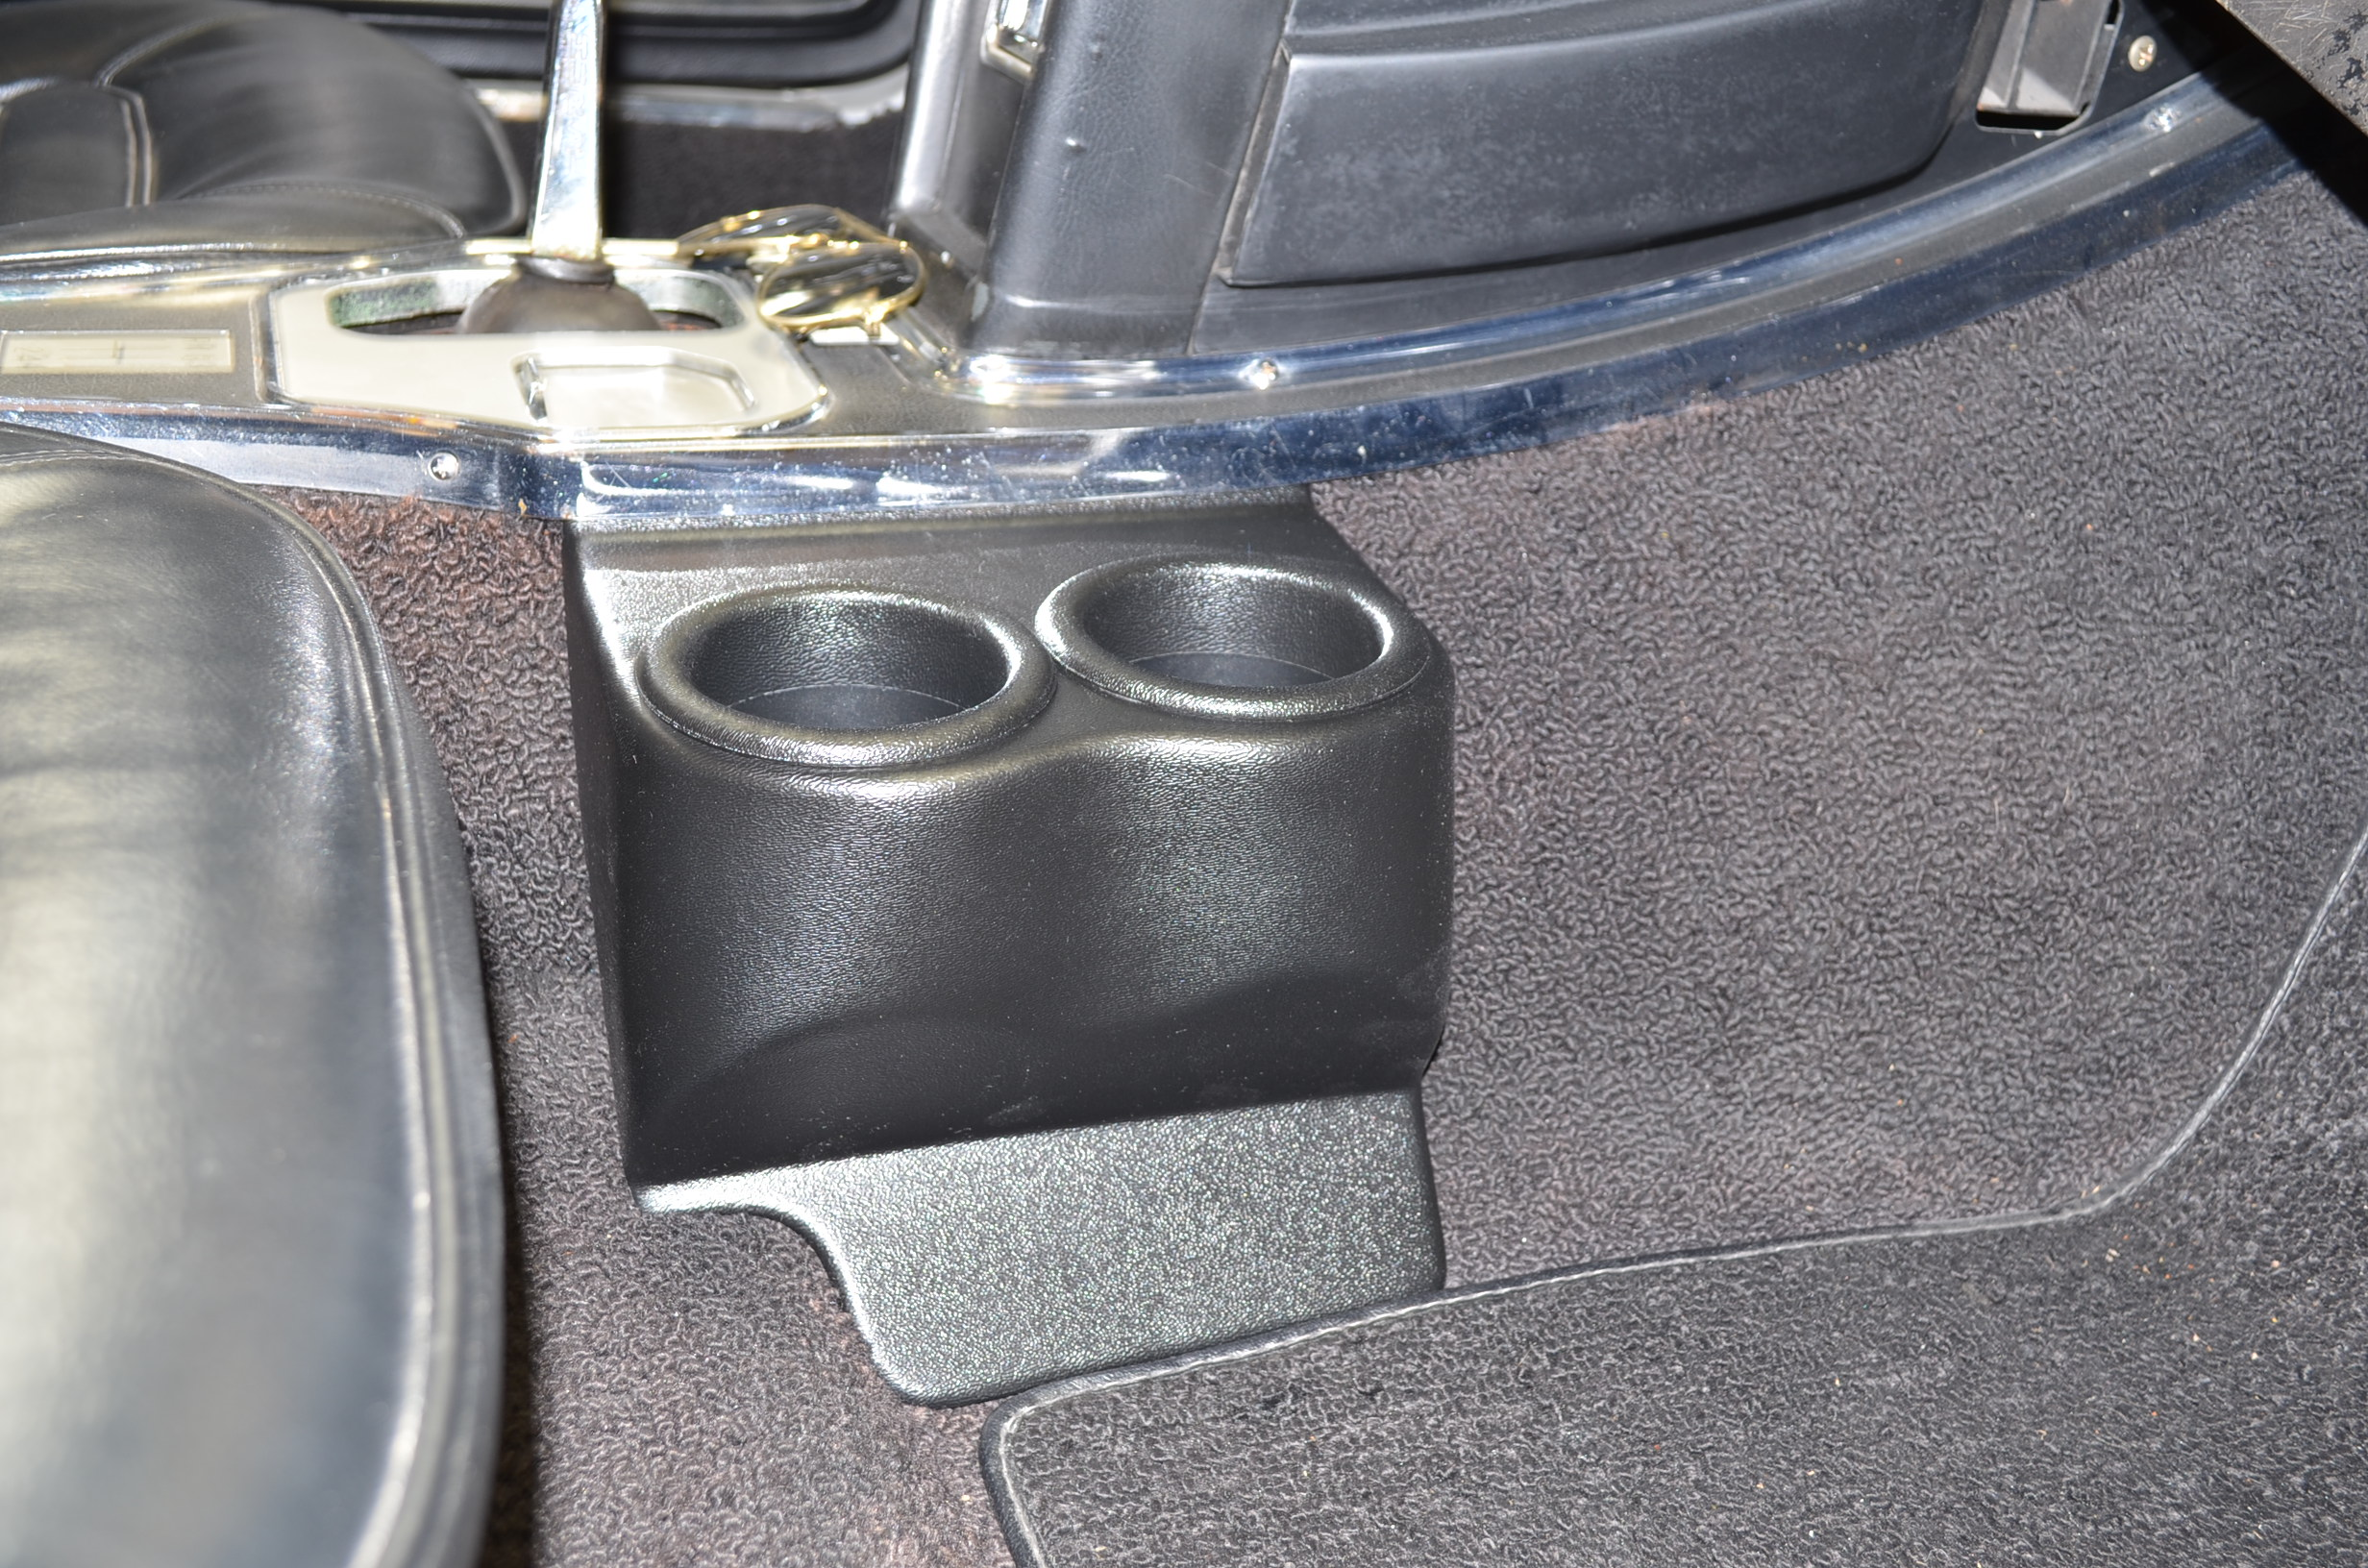 Double Travel Buddy Cup Holder For C2 Corvette In Black